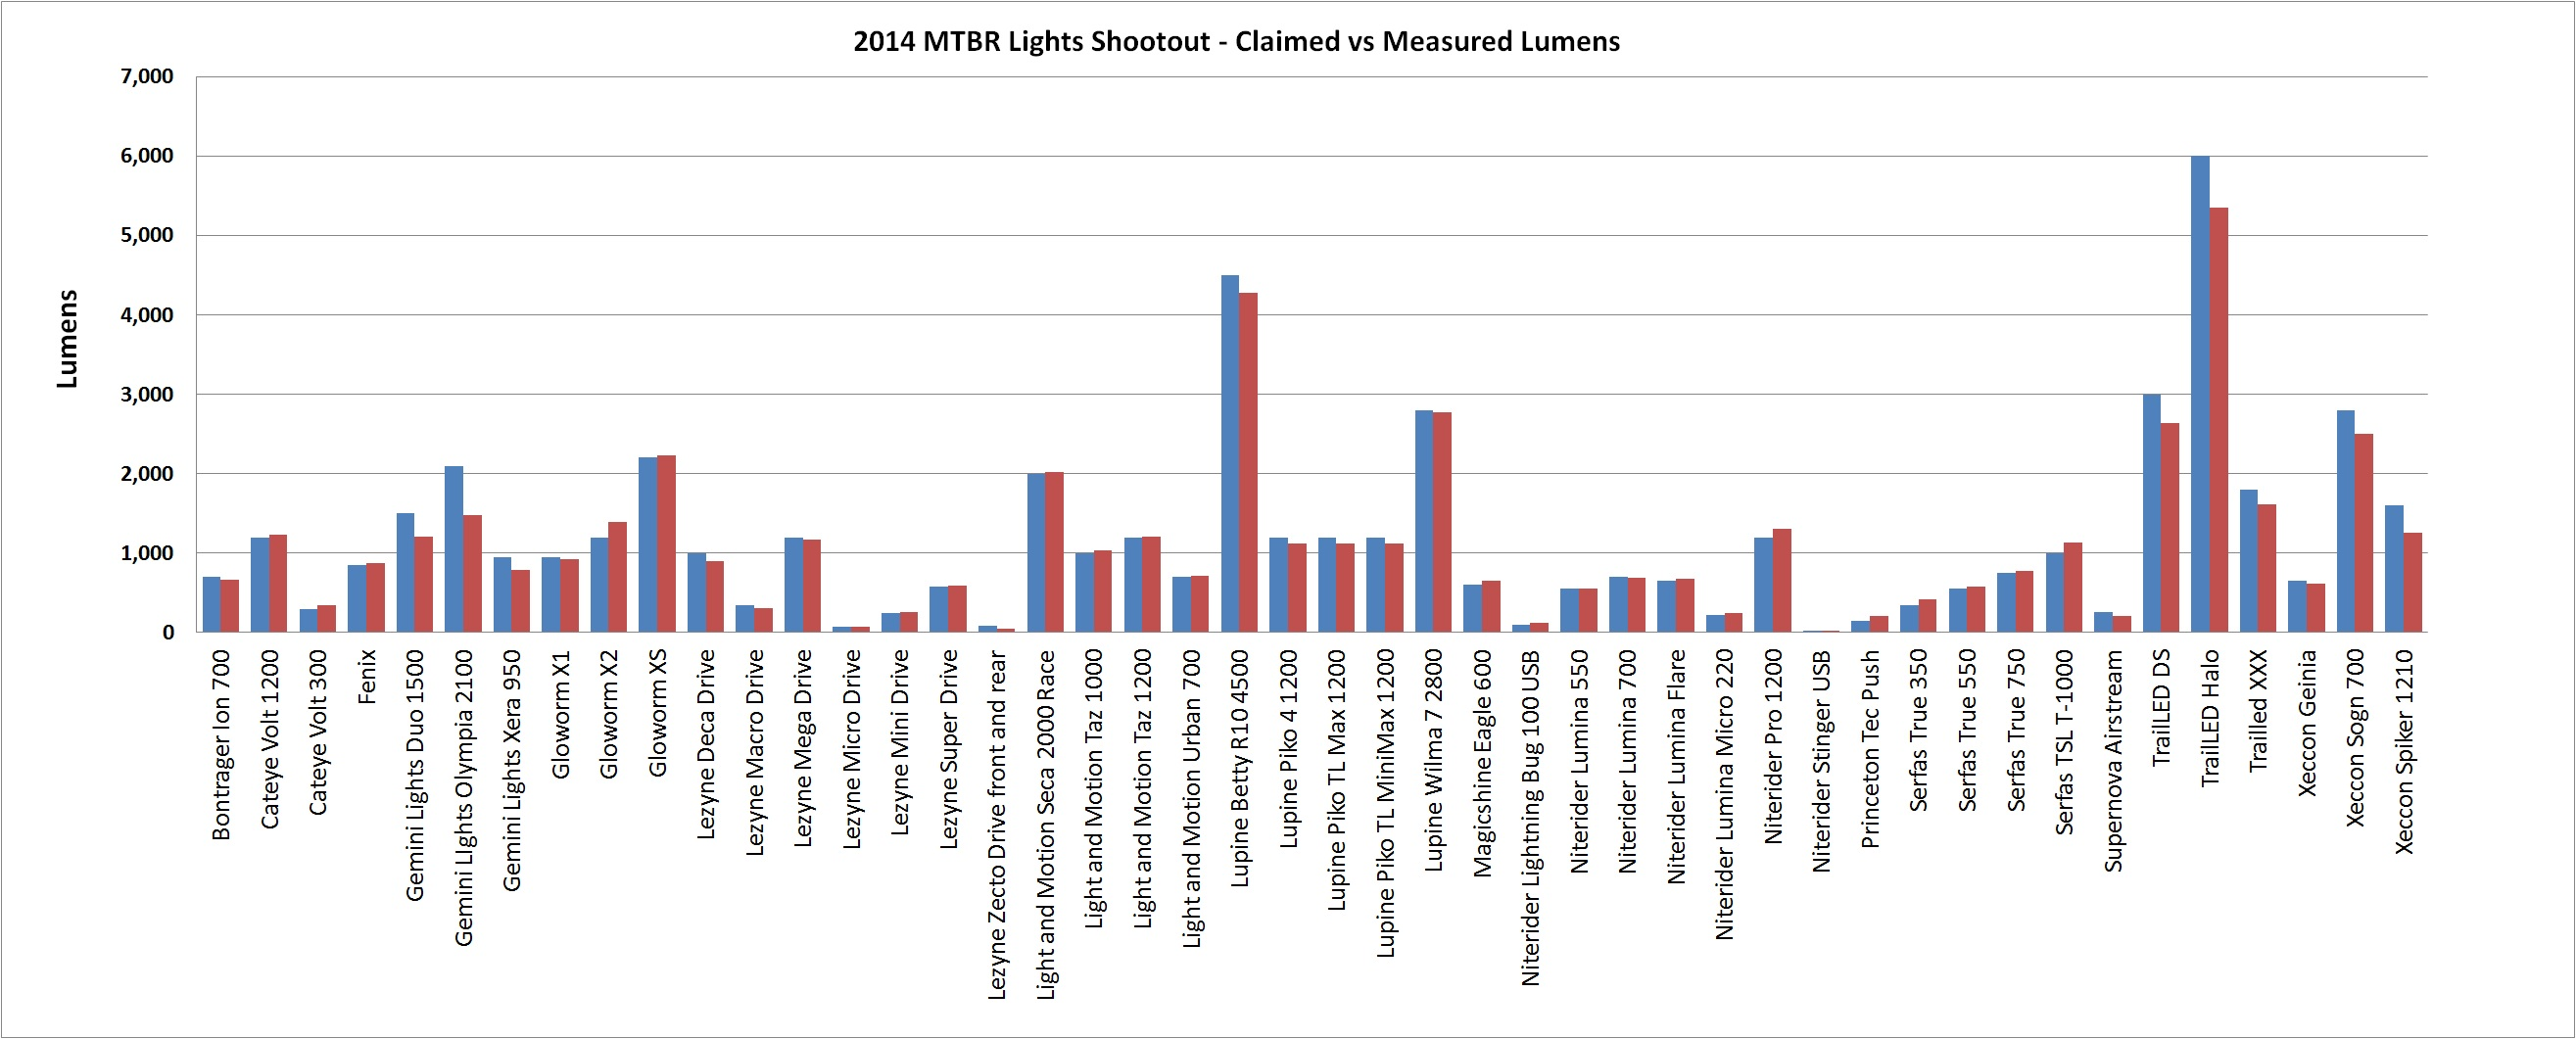 2014 Mtbr Lights Shootout - Claimed vs Measured Lumens